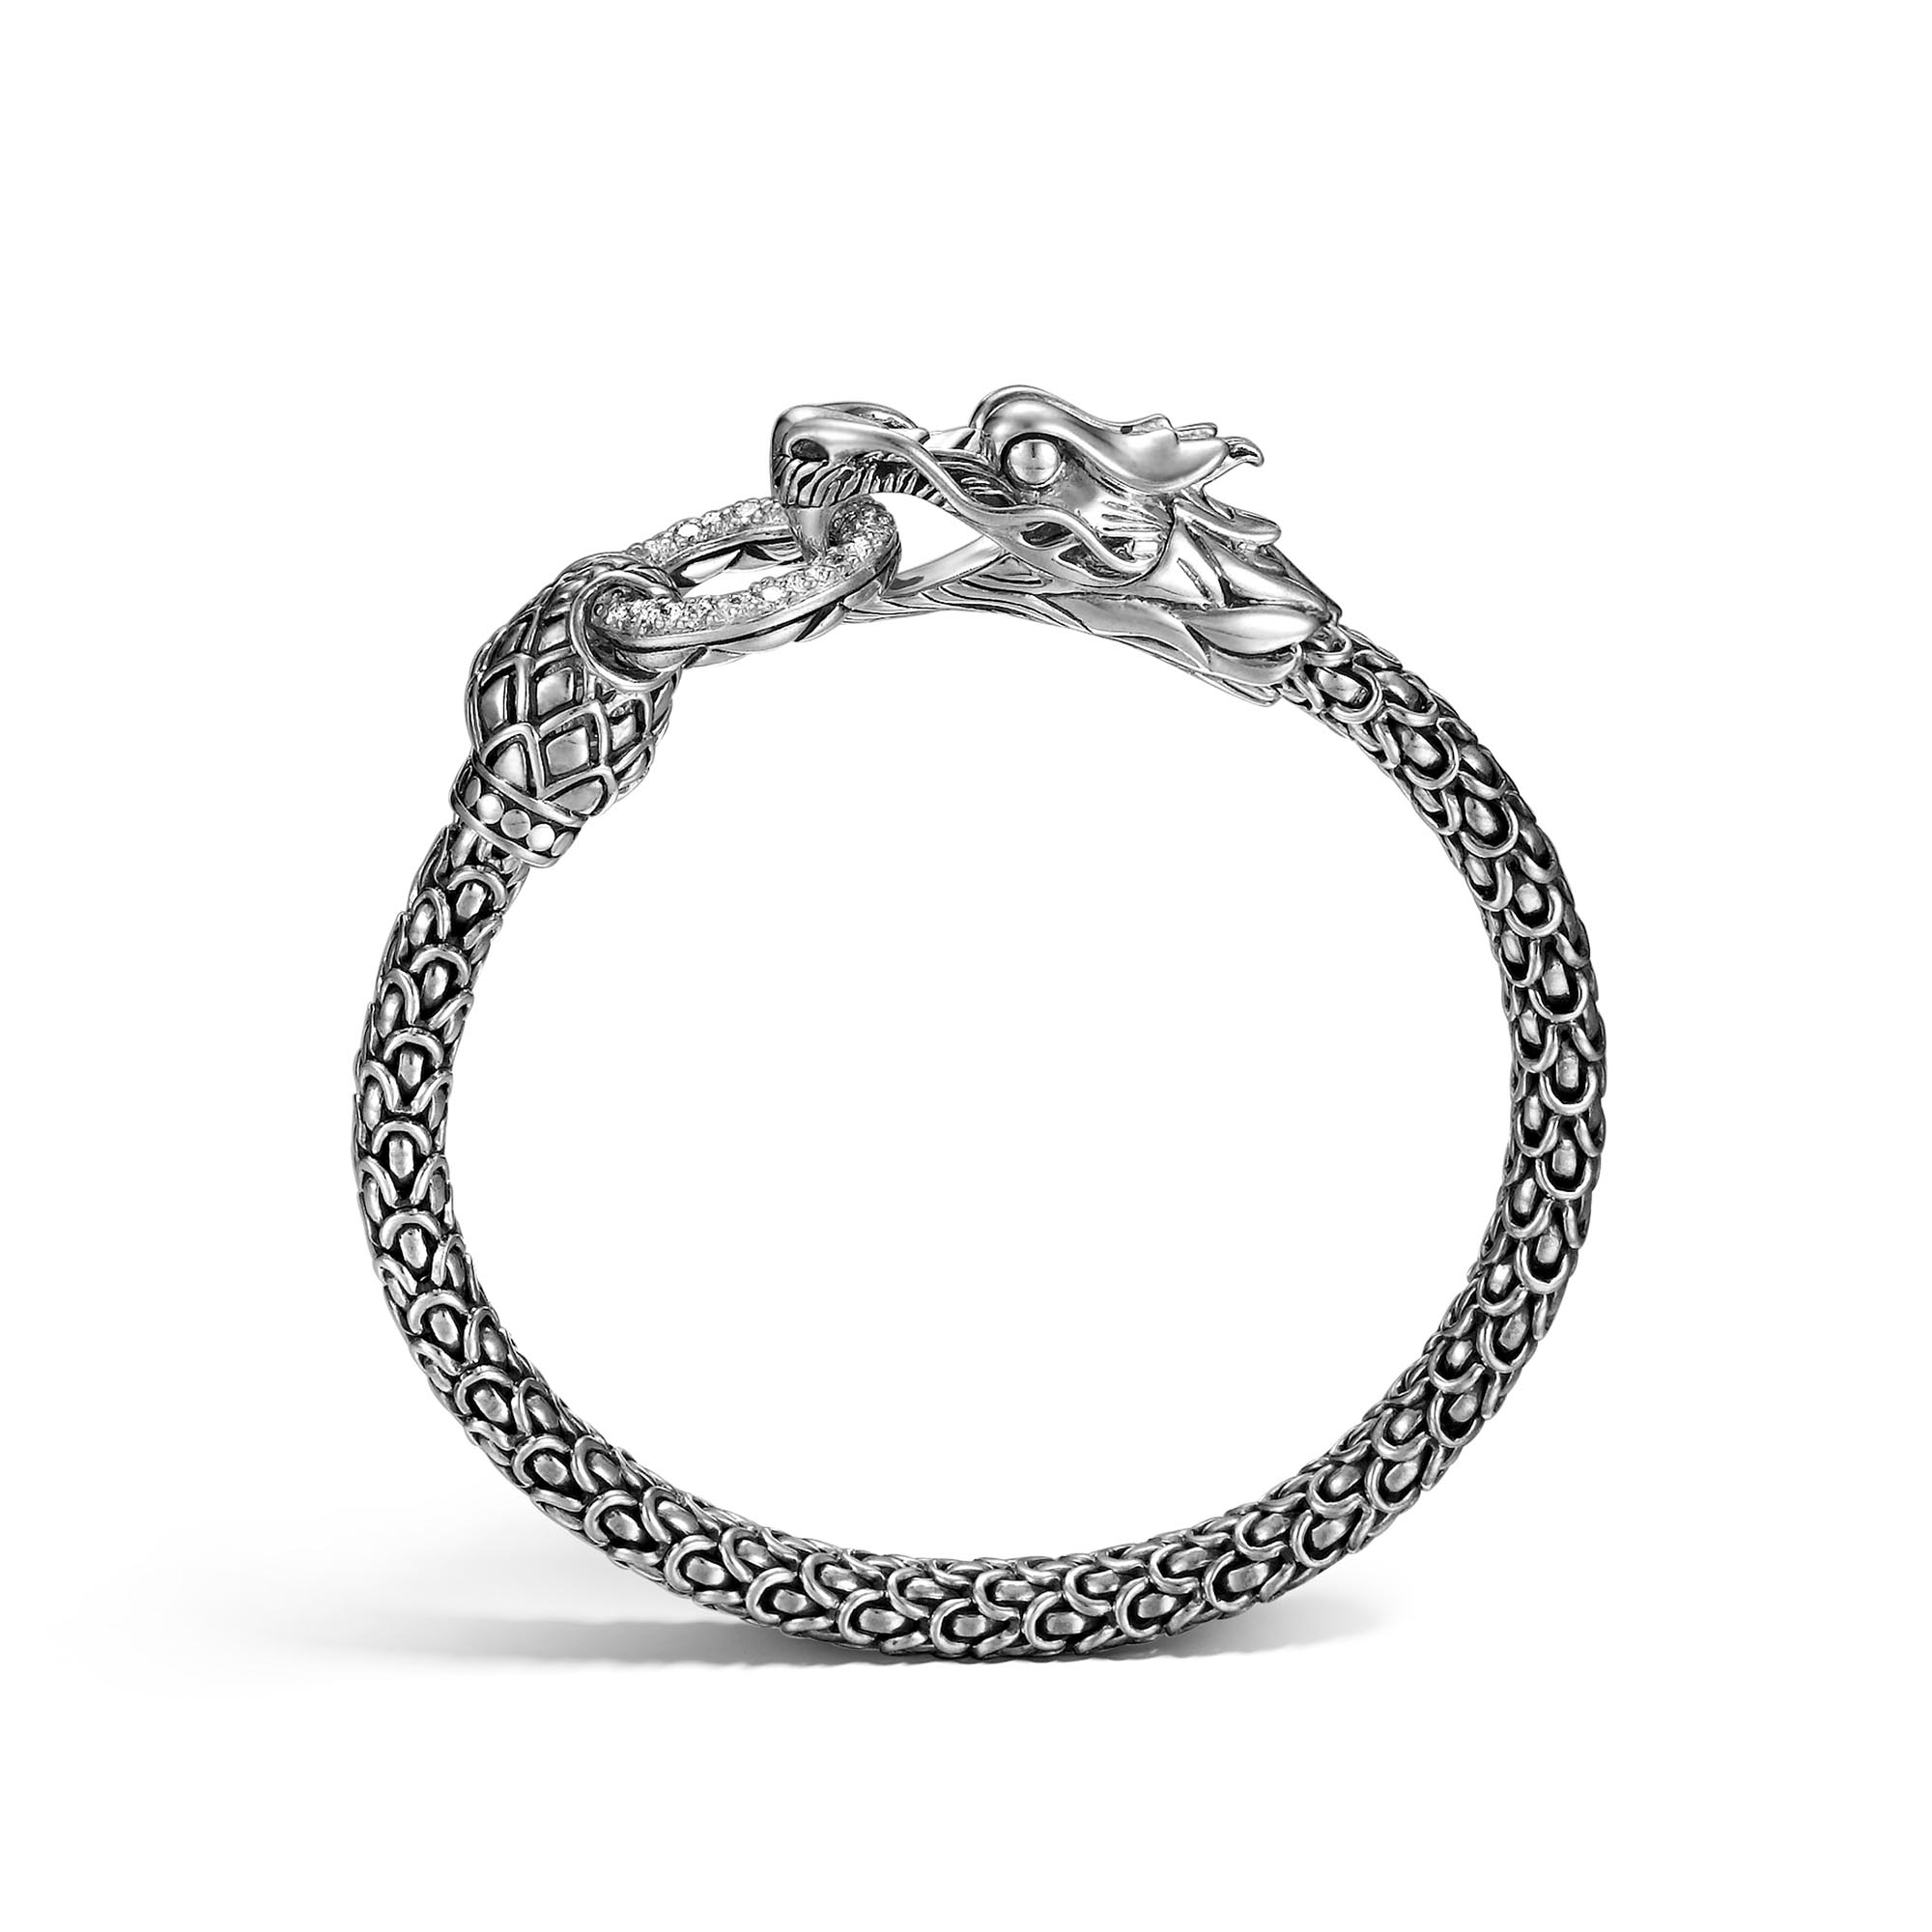 Legends Naga 6MM Station Bracelet in Silver with Diamonds, White Diamond, large